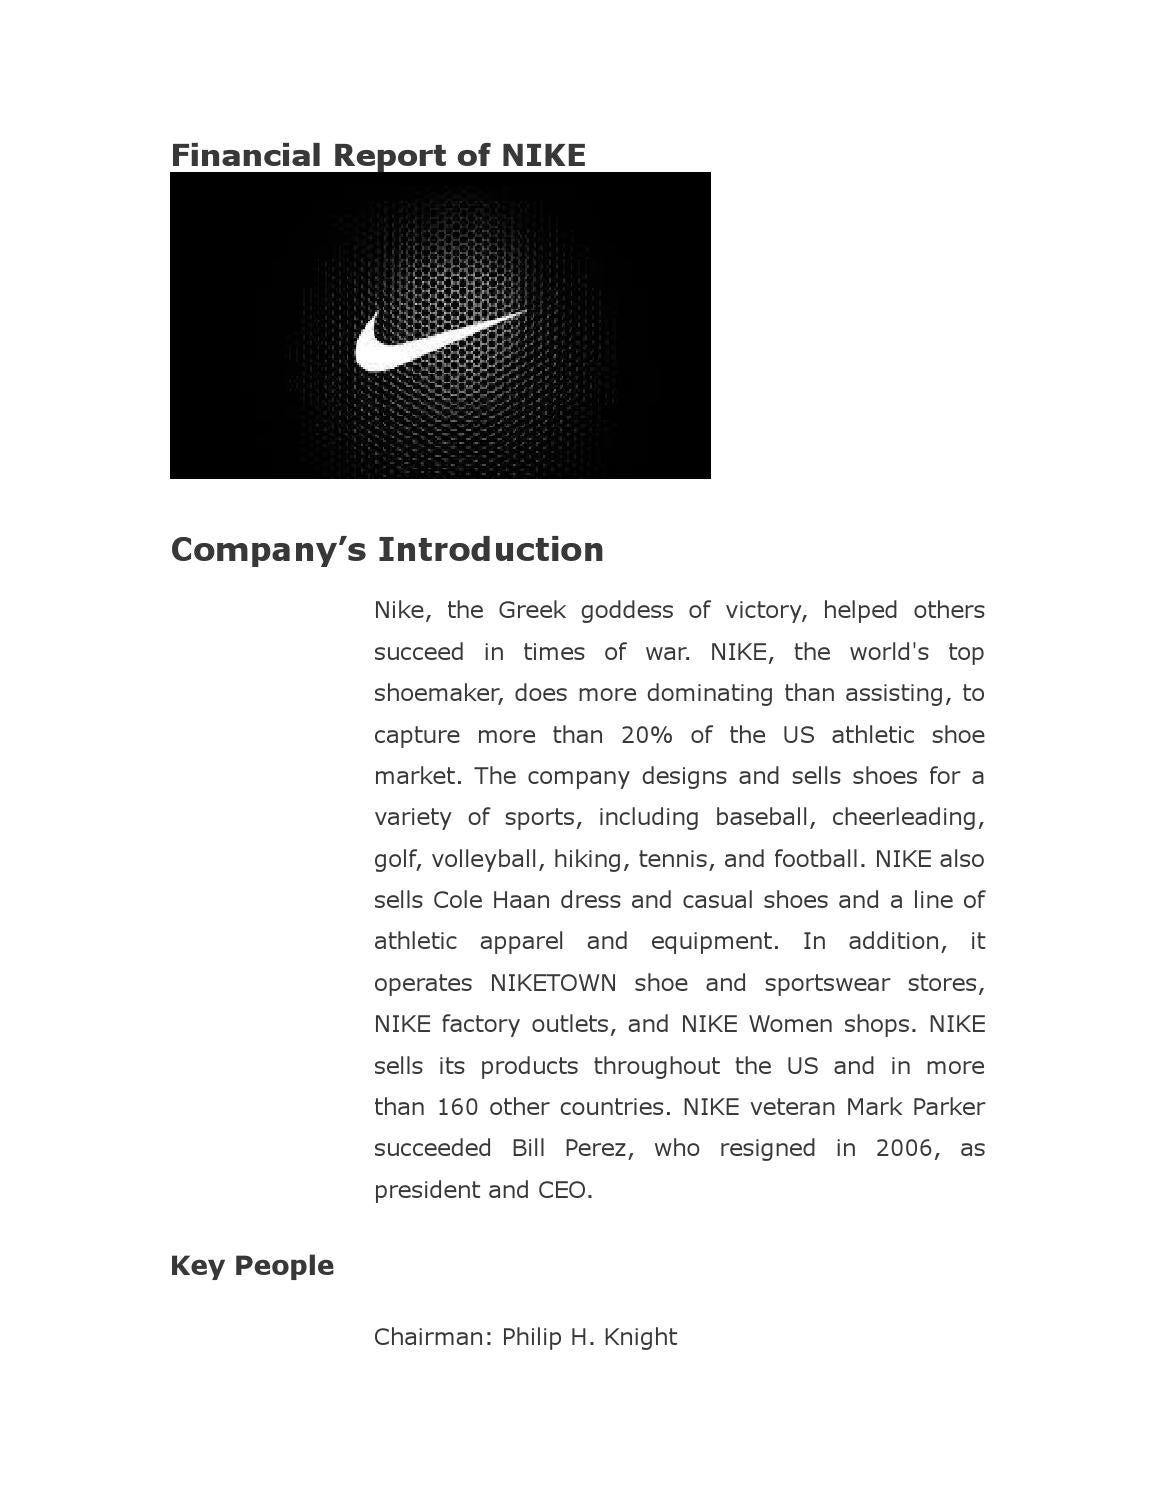 introduction to nike company View homework help - 26 nike_report from marketing 542 at gothenburg uni projectreport strategic management brief introduction of the company -1- company description: nike, inc is engaged in the.